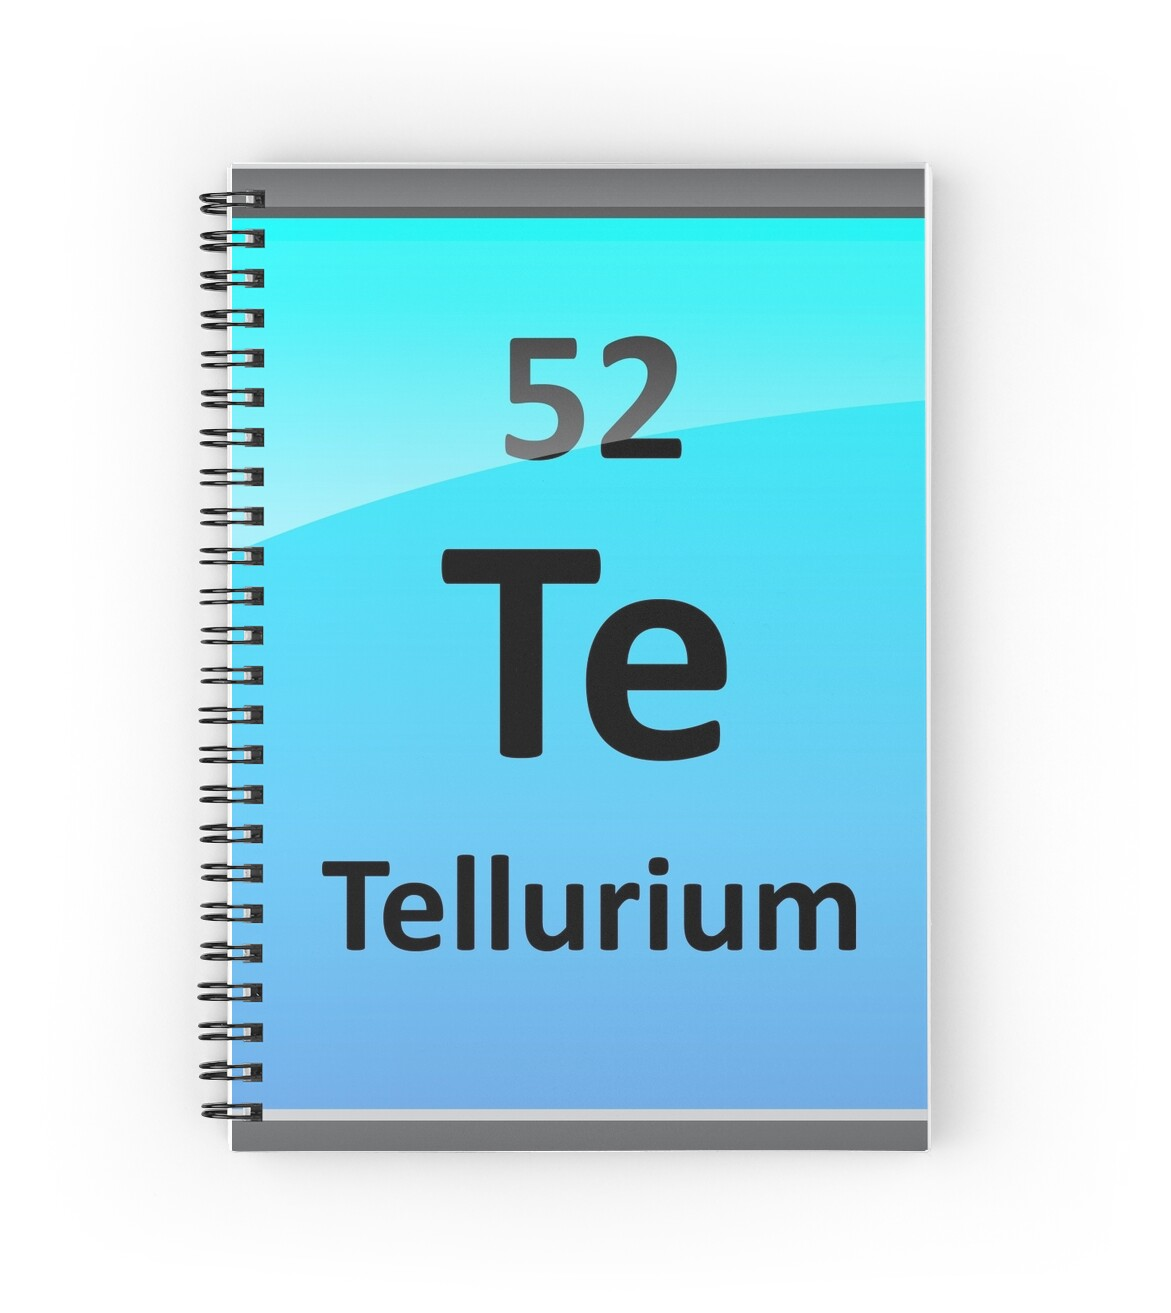 Steel symbol periodic table images periodic table images nitrogen symbol periodic table gallery periodic table images periodic table symbol for salt image collections periodic gamestrikefo Images